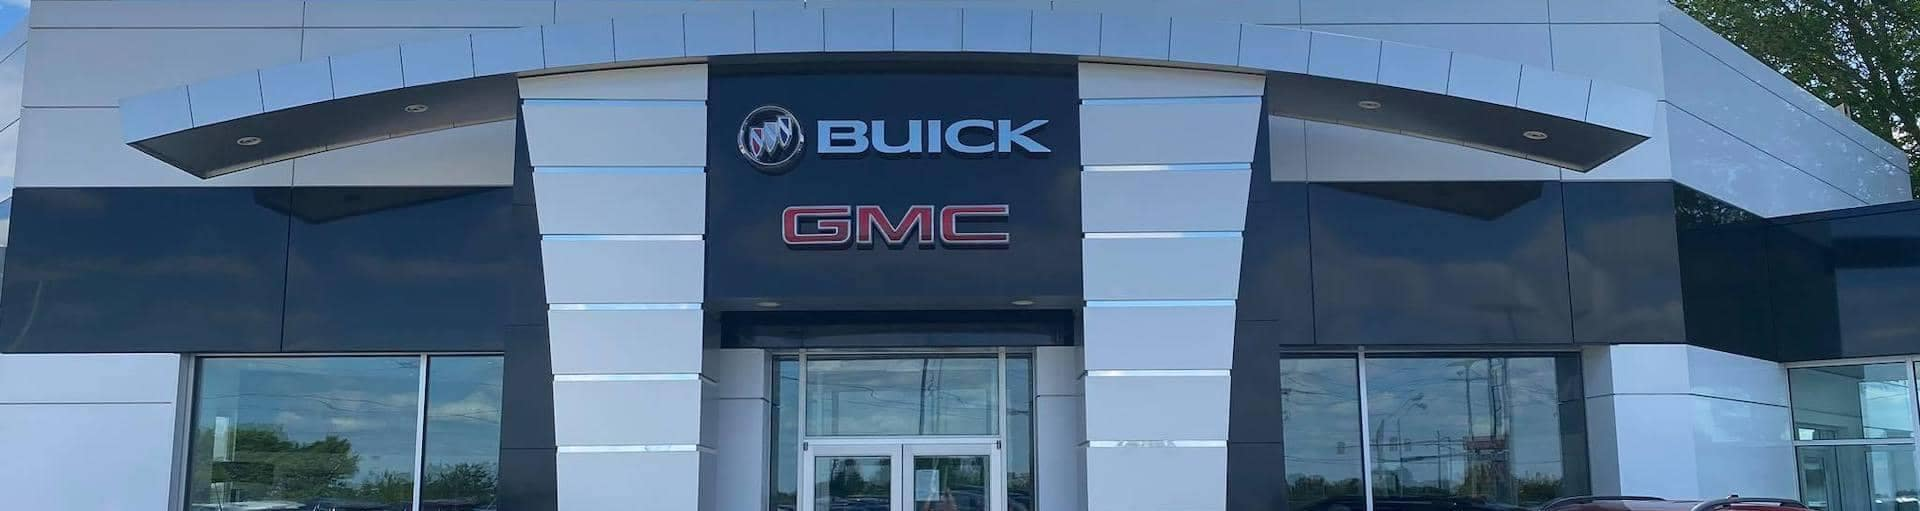 exterior view of entrance to Serra Buick GMC Champaign